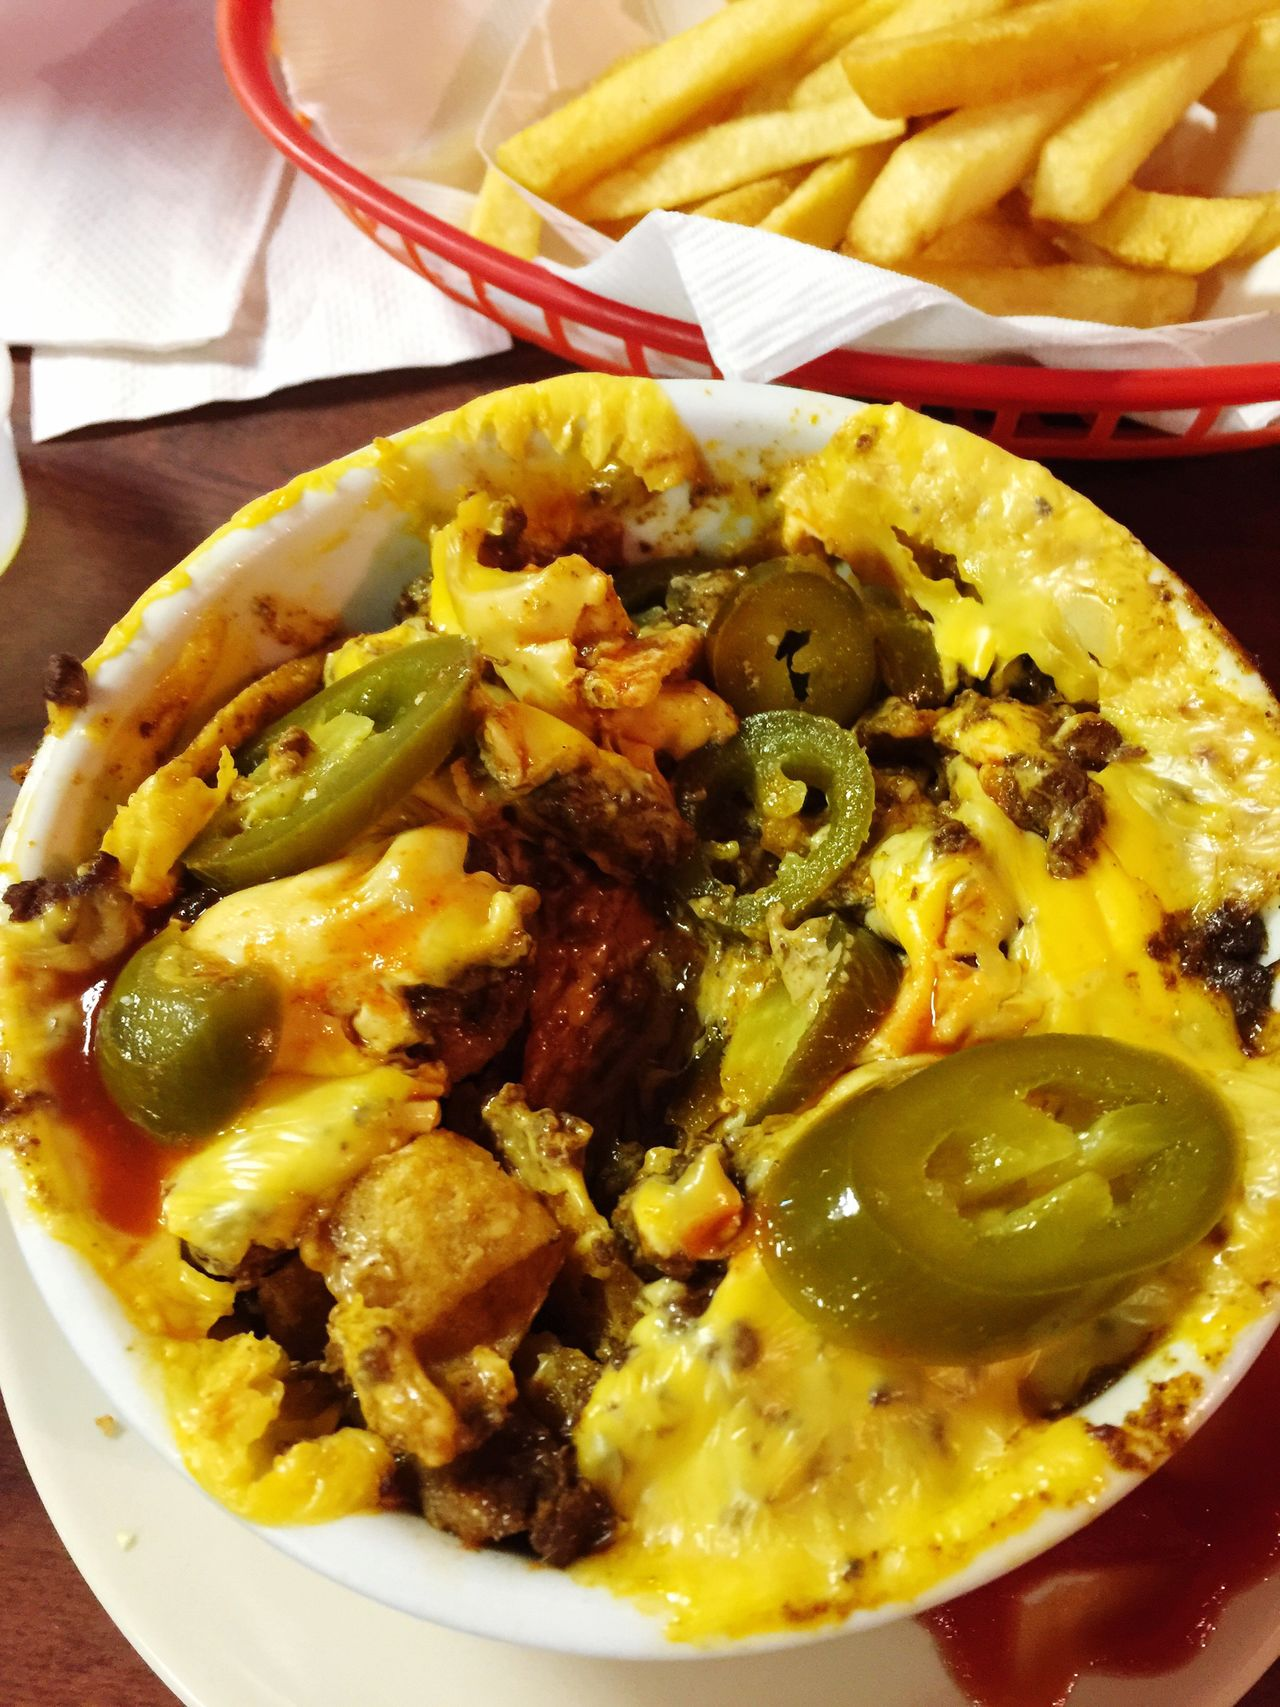 Food Galveston Sonny's Food Porn Frito Pie Chili  Jalapeños